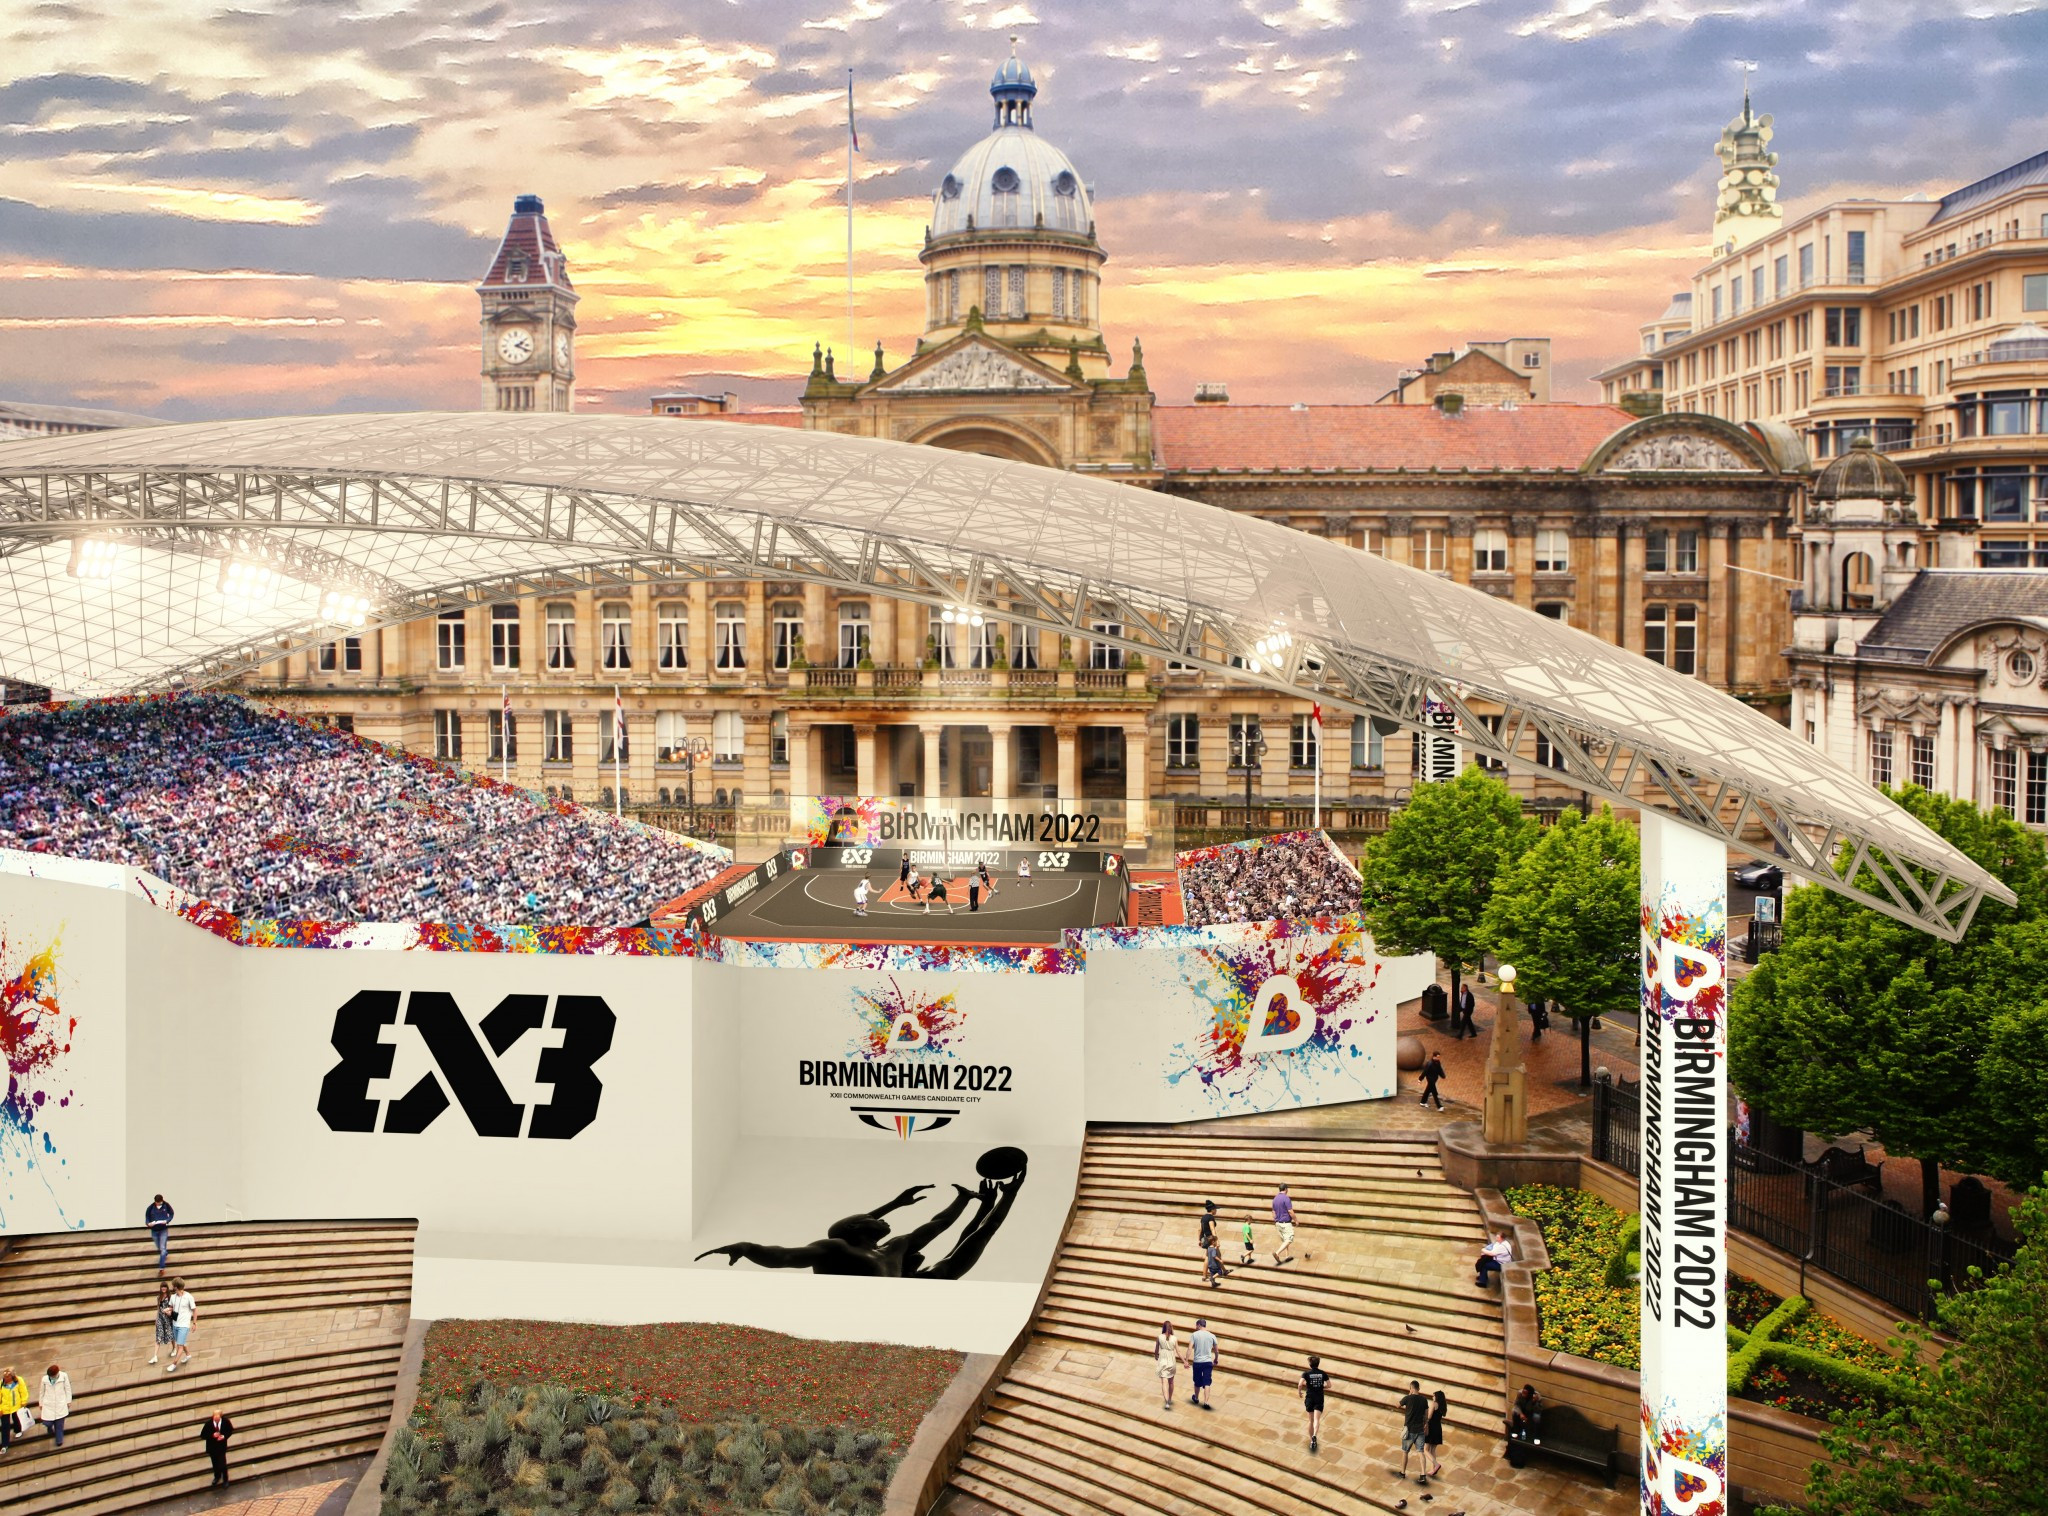 Birmingham include 3x3 basketball and Urban Street Festival as part of 2022 Commonwealth Games plans